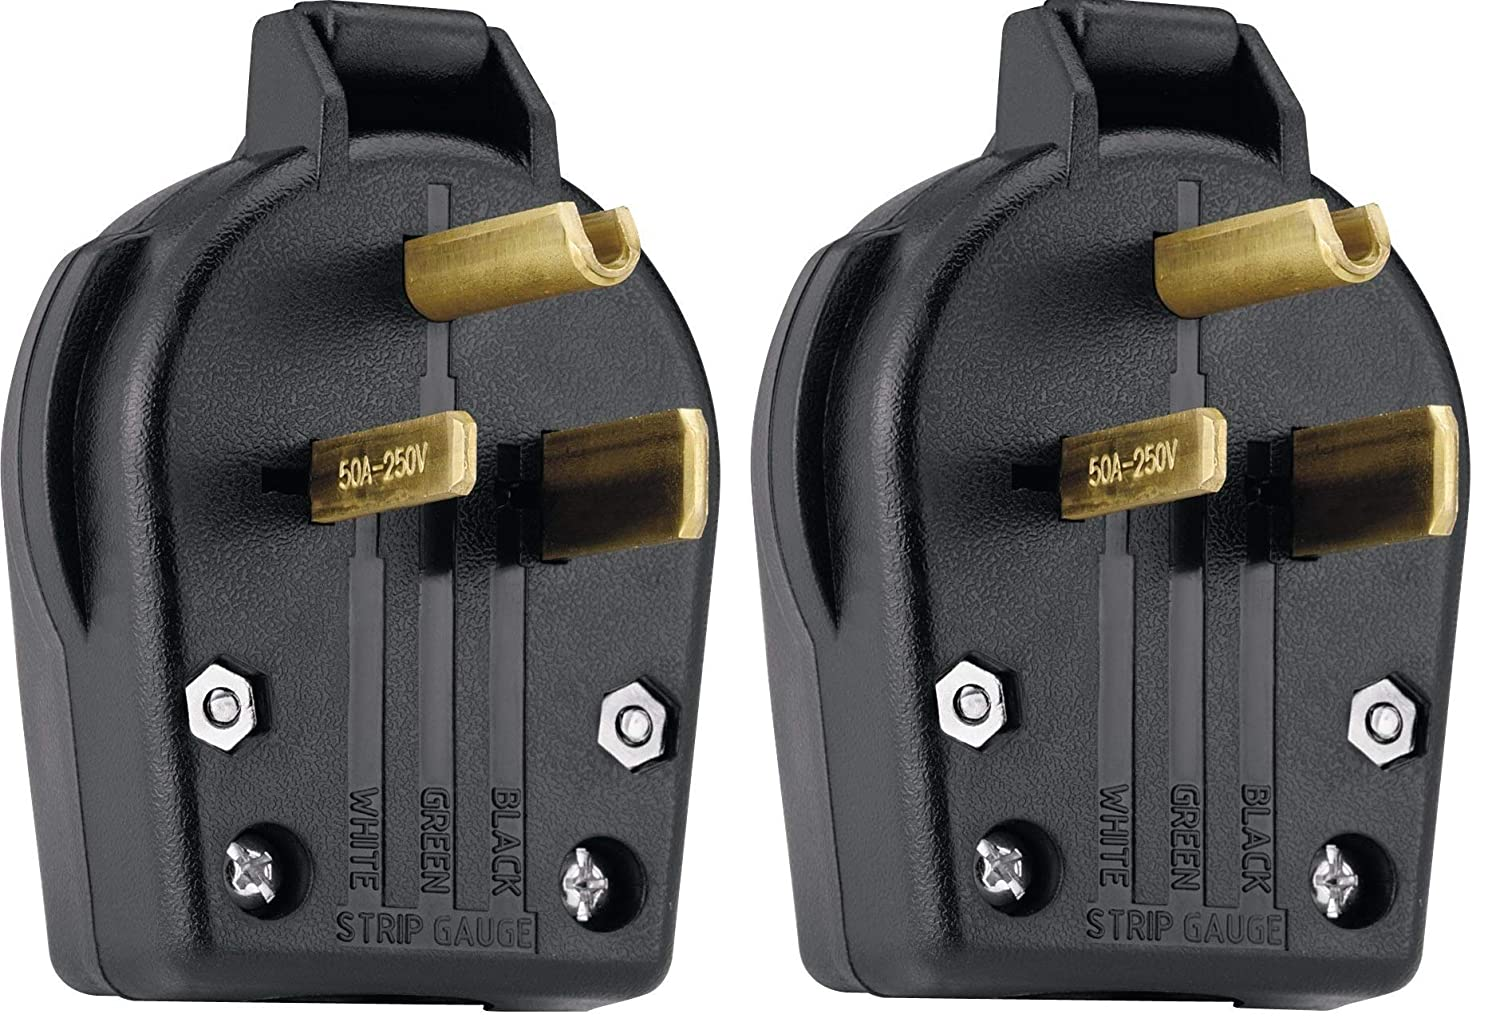 Eaton S42 Sp Commercial Grade Angle Vinyl Power Plug With 30 50 Amp Cooper Wiring Devices 20amp 125volt Yellow 3wire Grounding 250 Volt 6 Nema Rating Black Electric Plugs